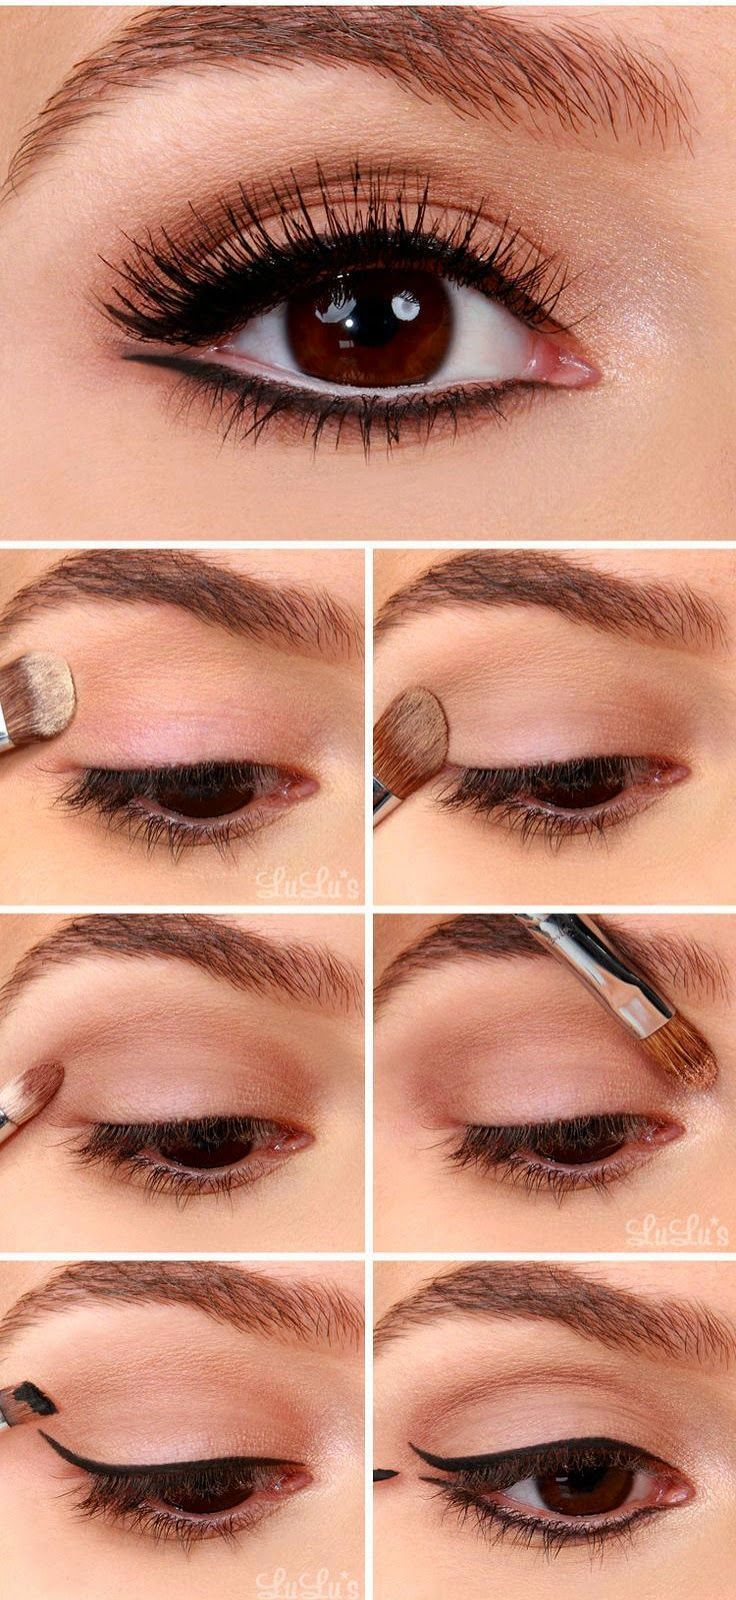 25 best ideas about black eyeliner on pinterest eye liner tips best black eyeliner and. Black Bedroom Furniture Sets. Home Design Ideas